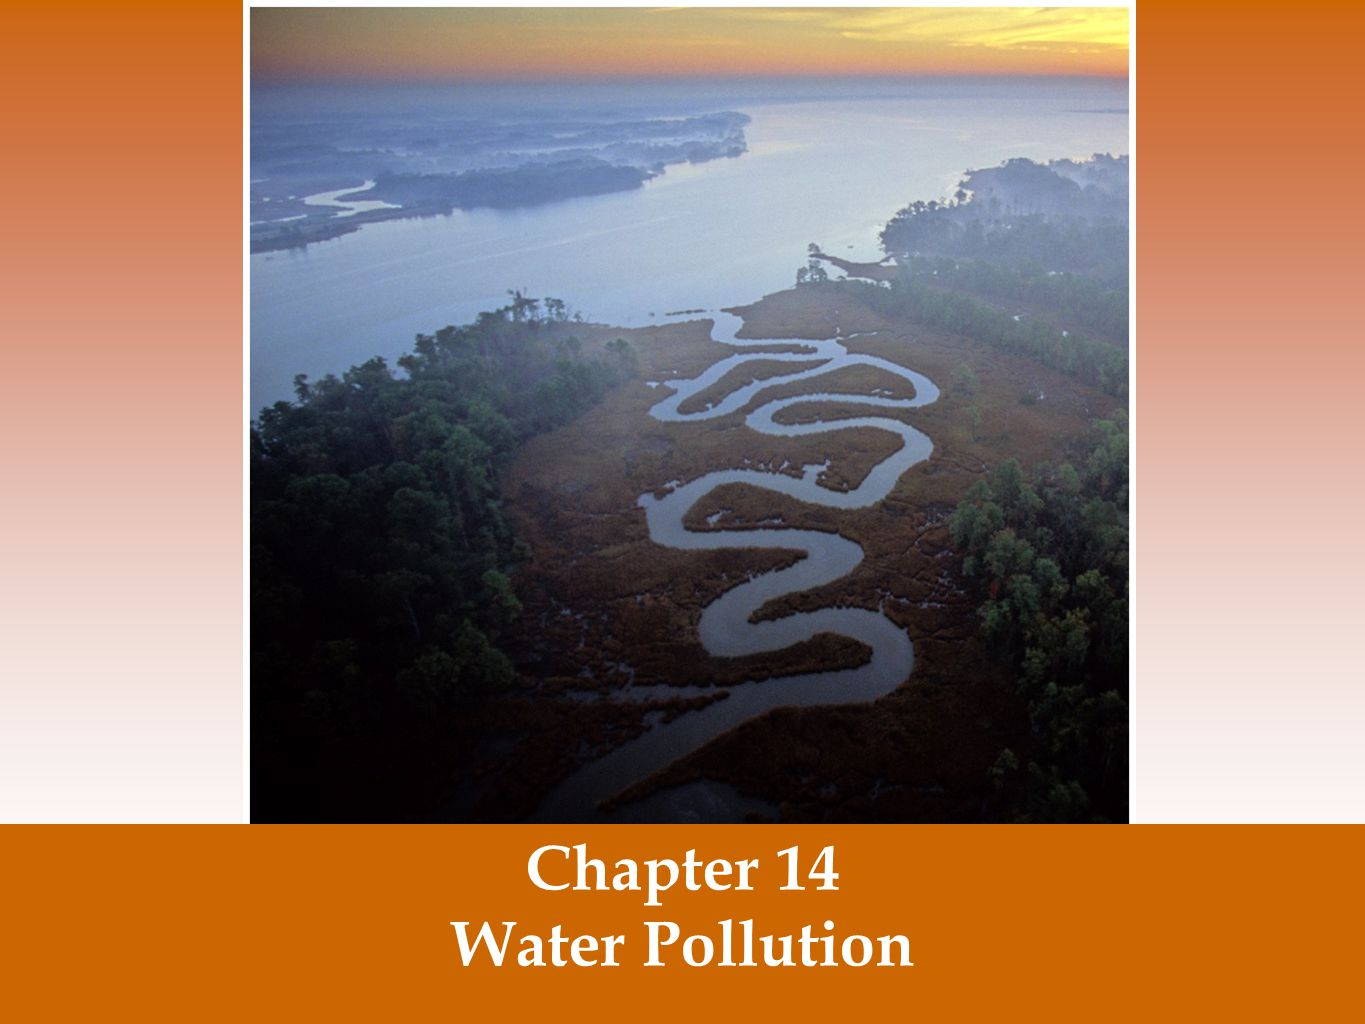 Objectives Distinguish between point and nonpoint sources of pollution Identify the ways in which human wastewater can cause water pollution Evaluate the different technologies that humans have developed for treating wastewater Identify the major types of heavy metals and other substances that pose serious hazards to humans and the environment.